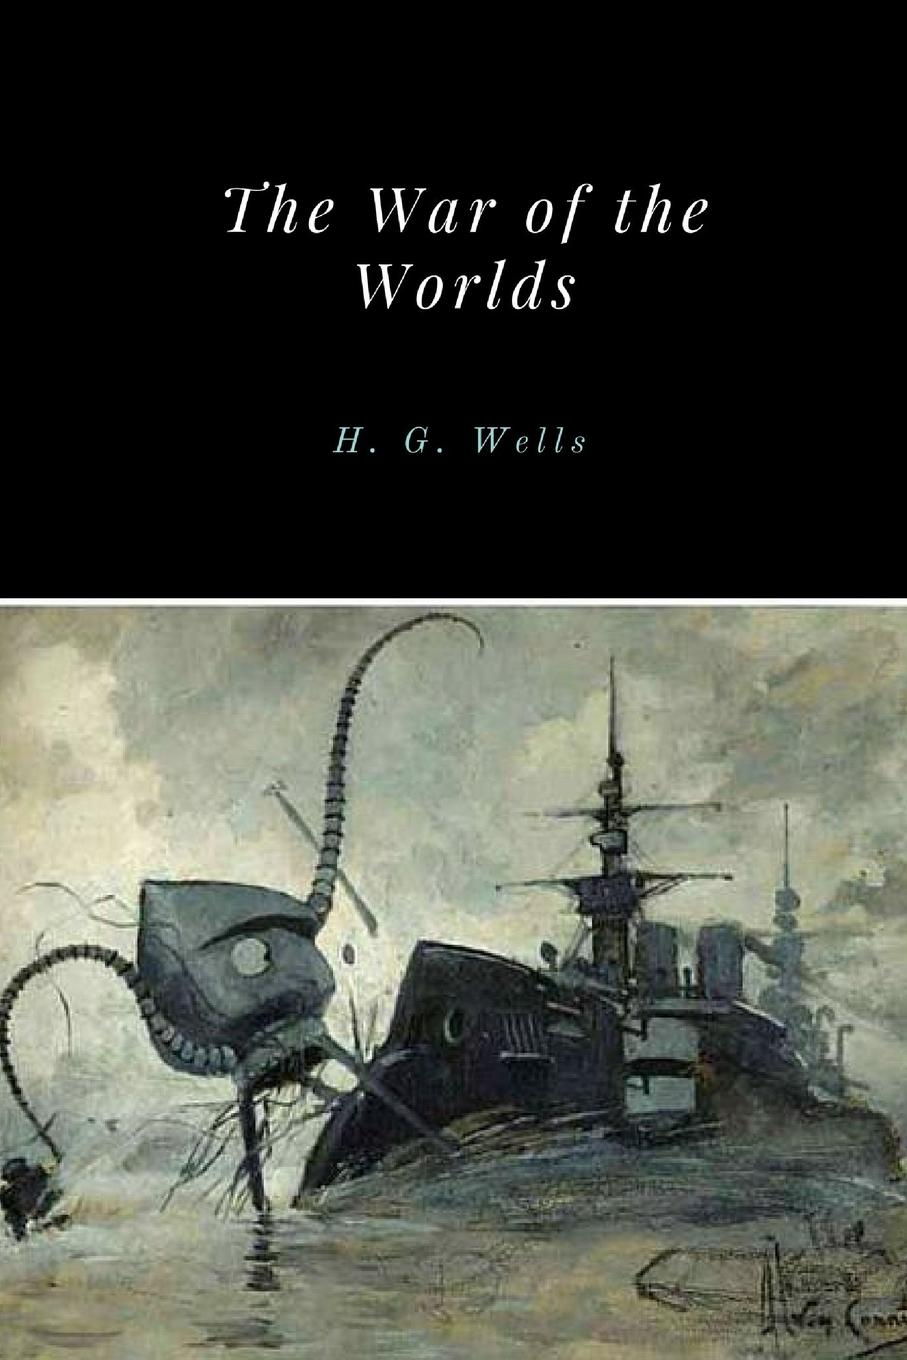 H. G. Wells The War of the Worlds h g wells